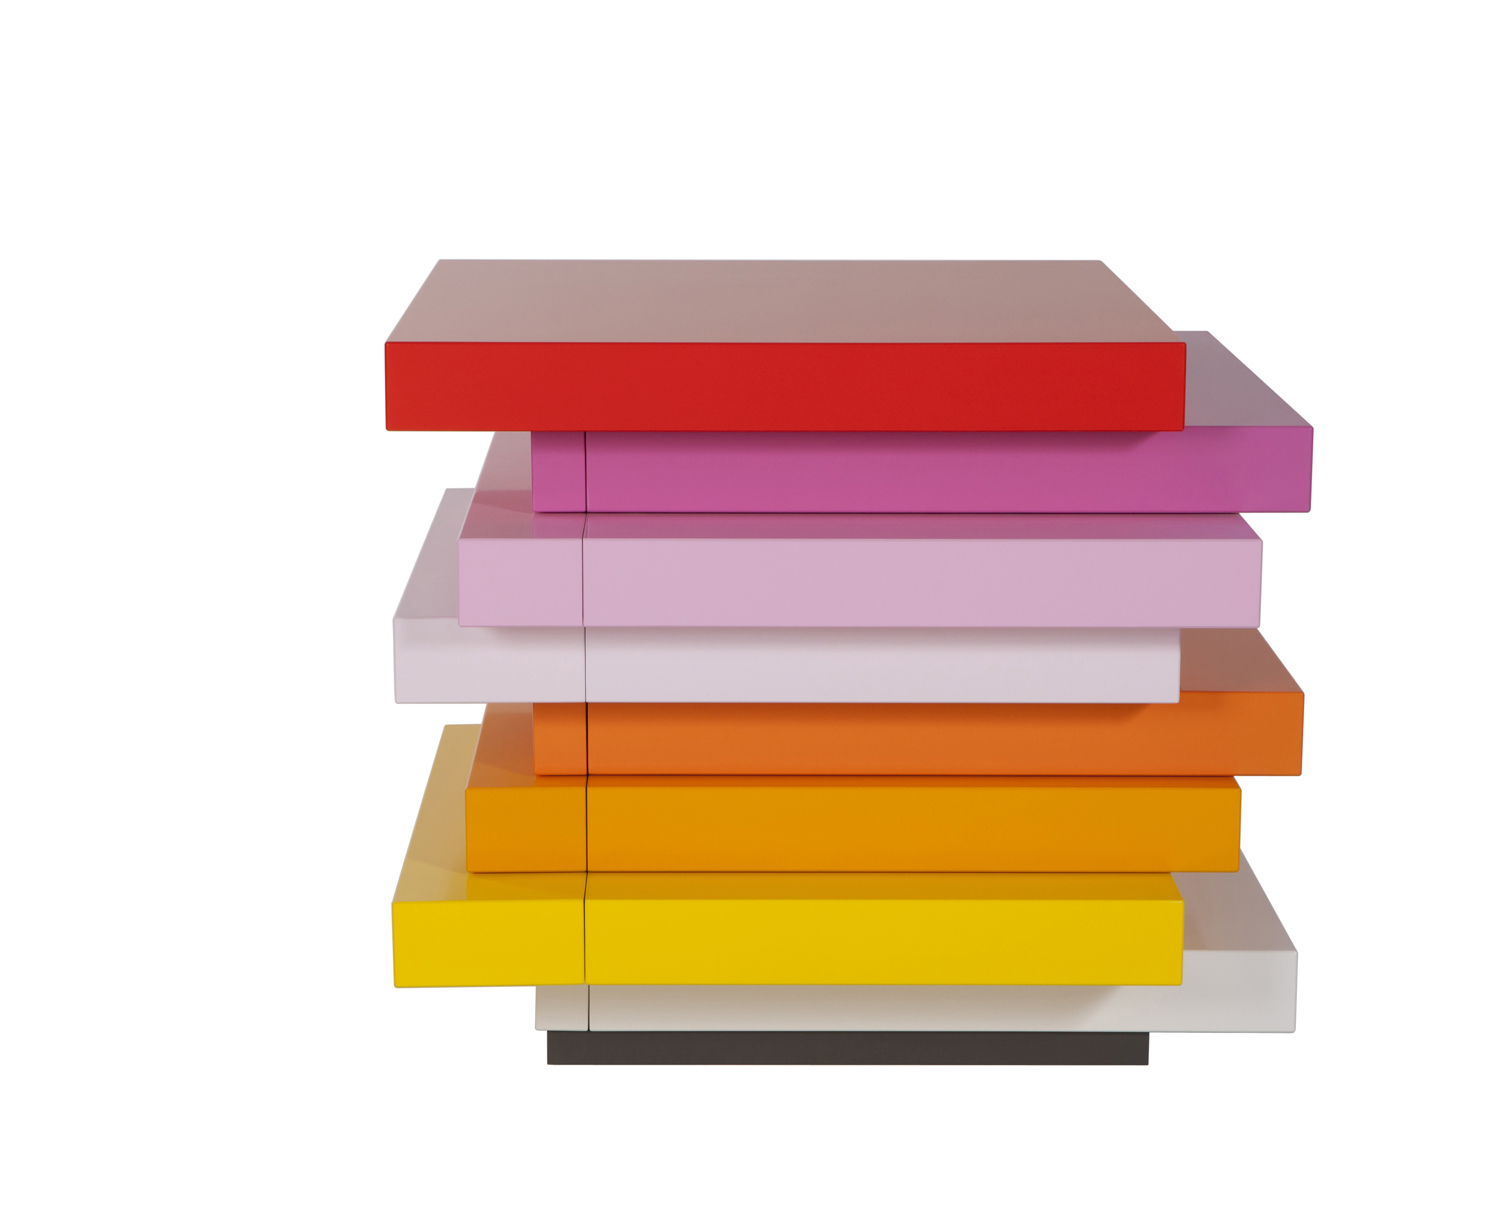 5_shikiri_millefeuille_storage_by_emmanuelle_moureaux_for_schoenbuch_french_design_japanese_furniture_color_in_interiors_francuski_design_japonskie_meble_kolor_we_wnetrzach